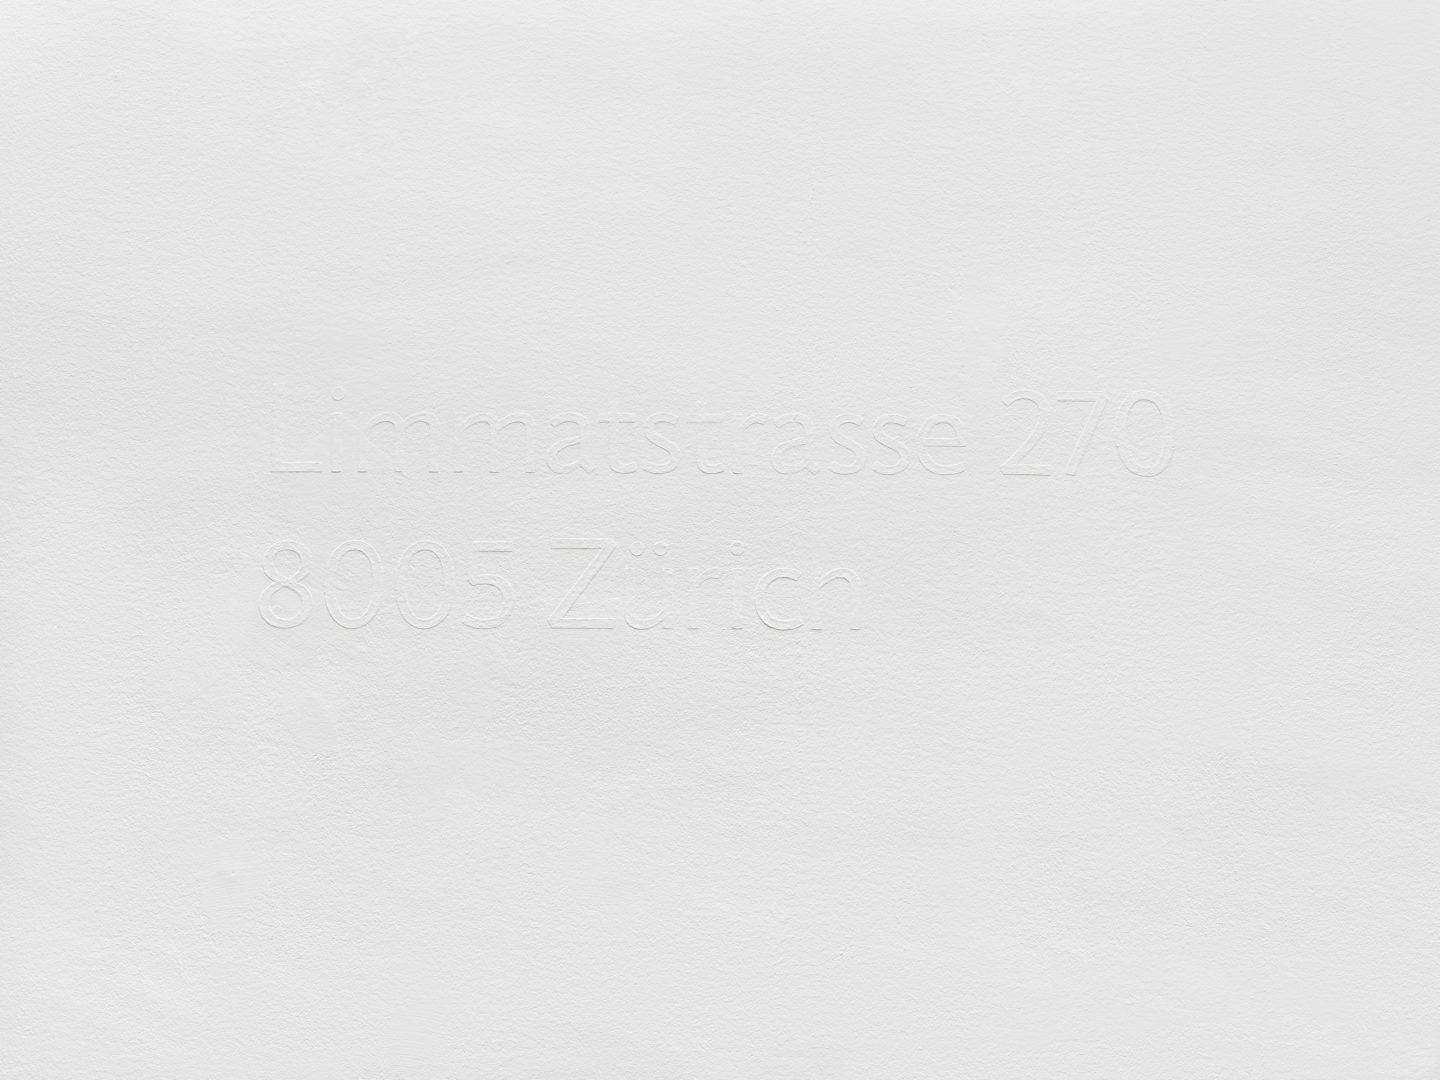 Maria Eichhorn, Limmatstrasse 270, 8005 Zürich (2011/2018), postal address, wall text, bas-relief, white emulsion paint on a white wall, manual application of paint with a brush in multiple layers, typeface: Jigsaw Regular, Dimensions variable, here: 27 x 98,3 cm, Wall painting: Christian Eberhard, Sammlung Migros Museum für Gegenwartskunst, photo: Stefan Altenburger Photography, Zurich © ProLitteris, Zürich